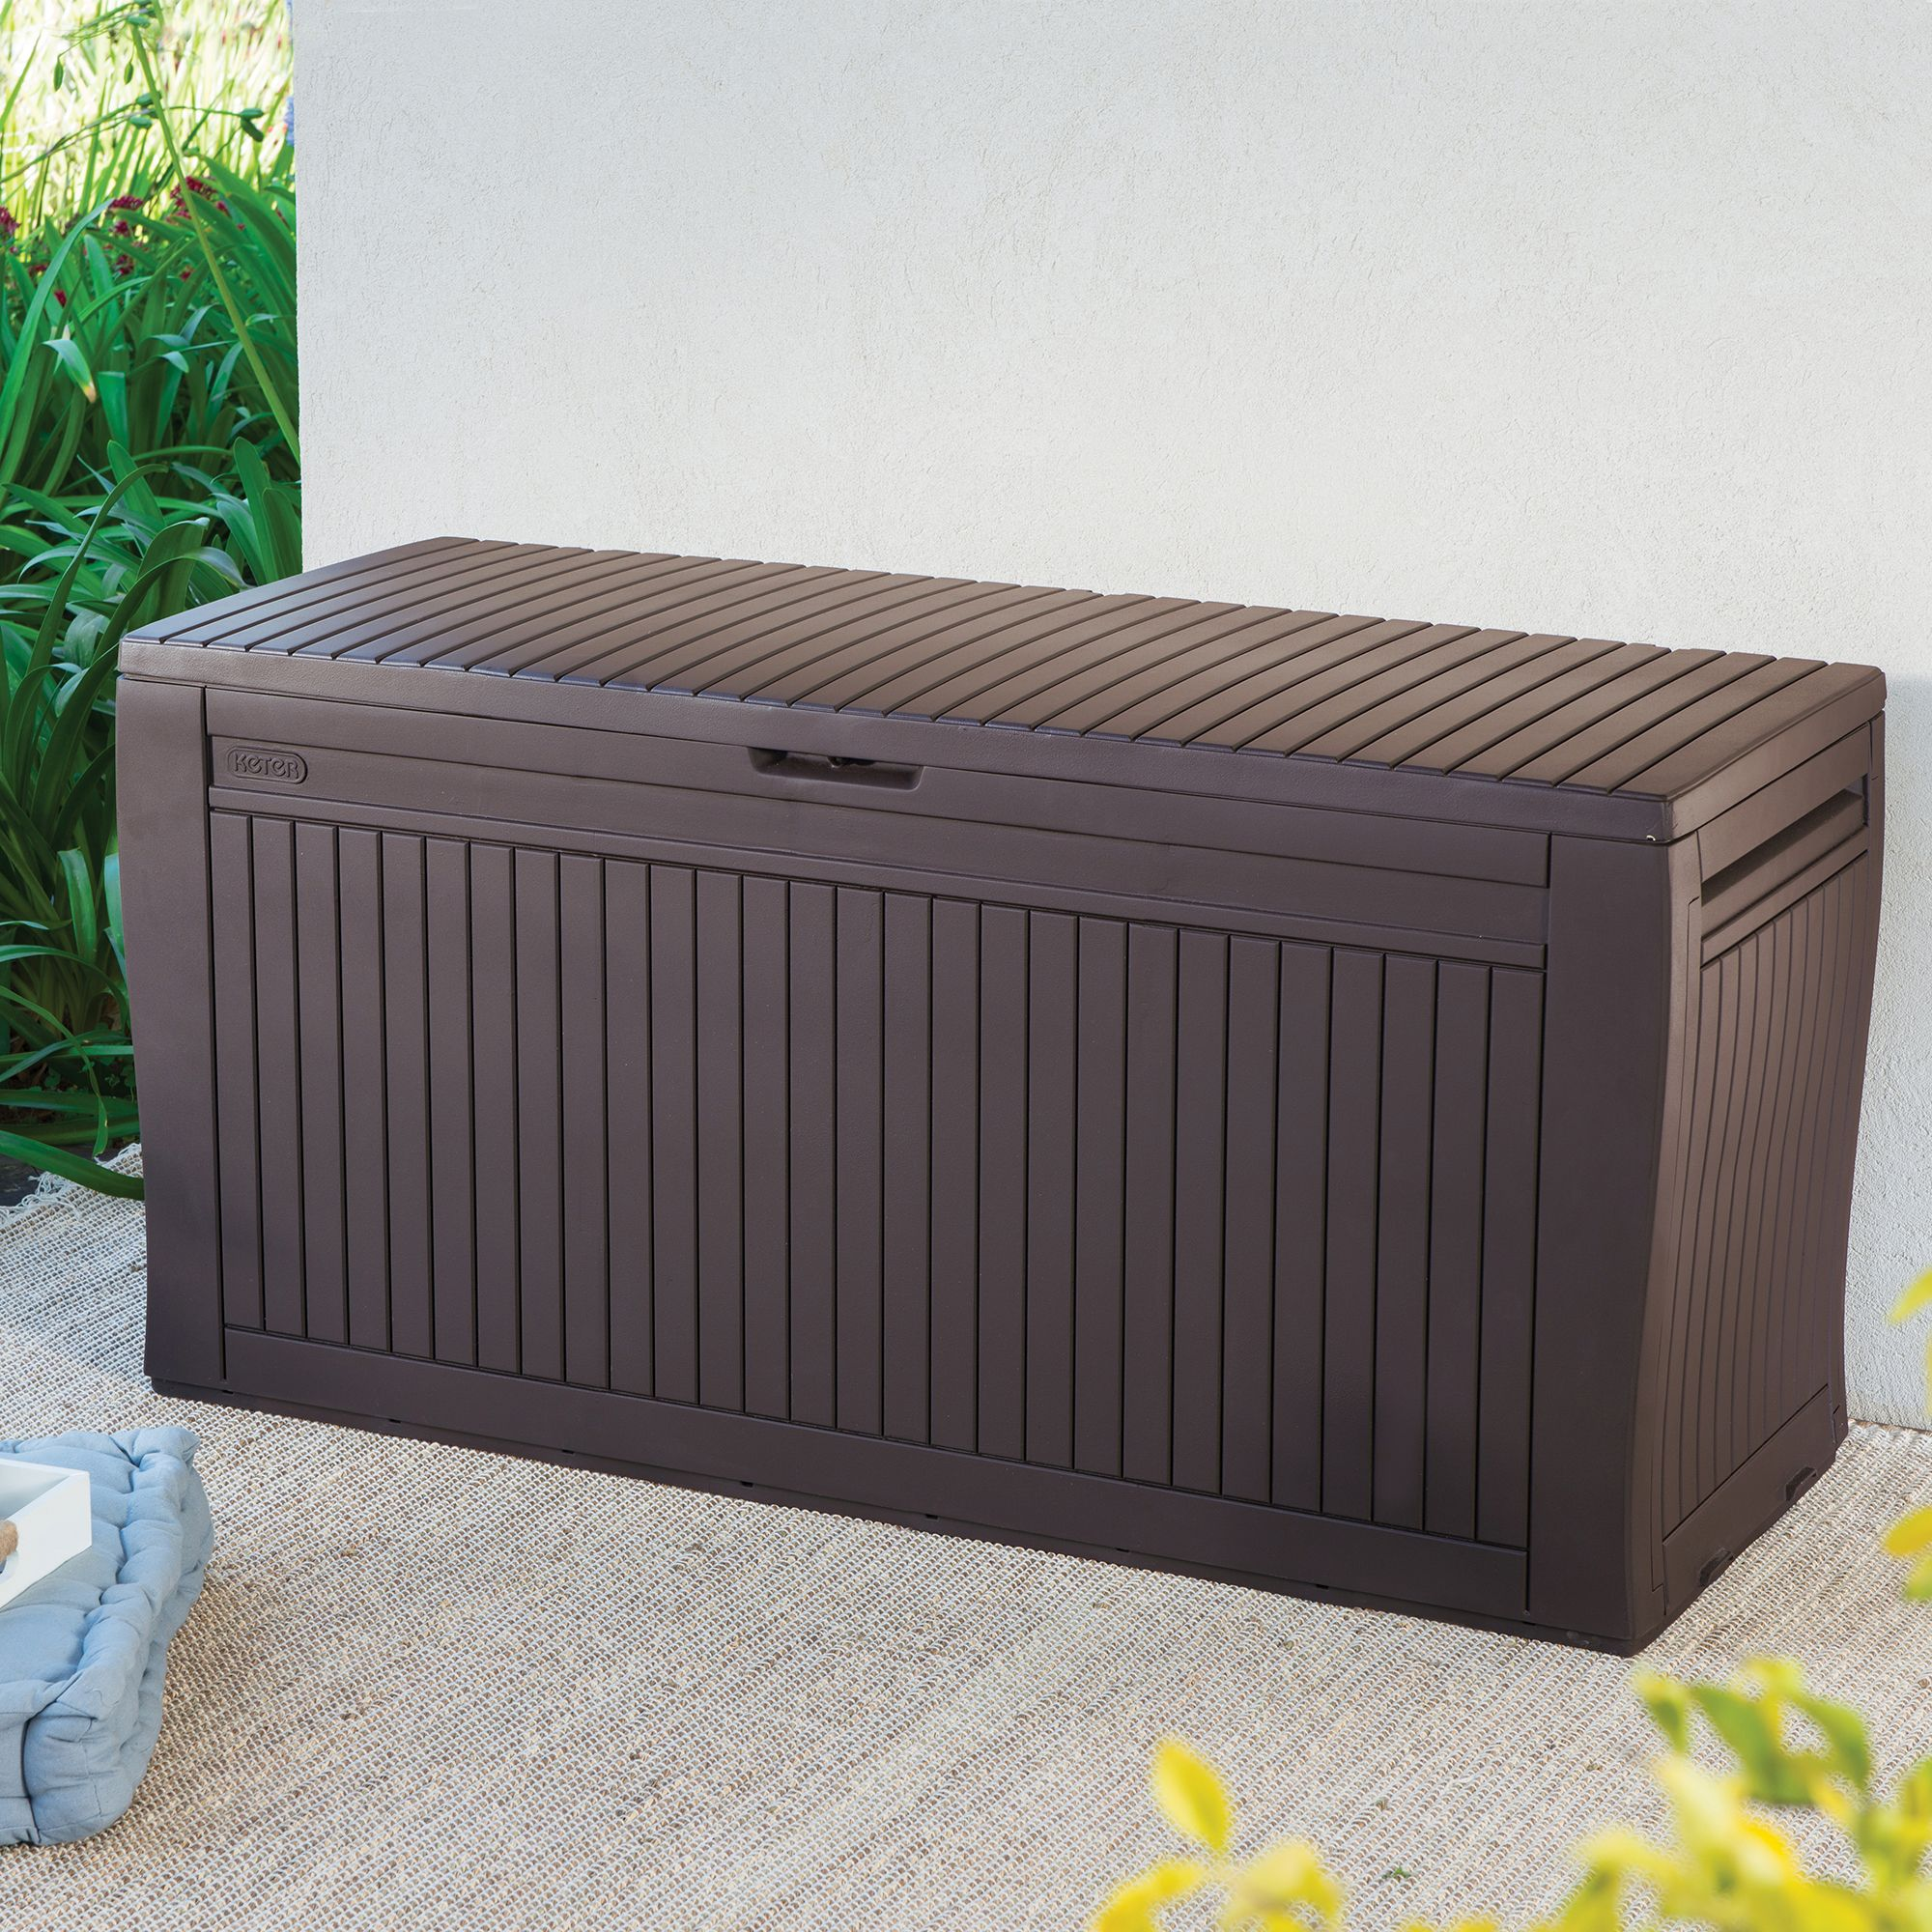 Comfy Wood Effect Plastic Patio Storage Box Departments Diy At B Q